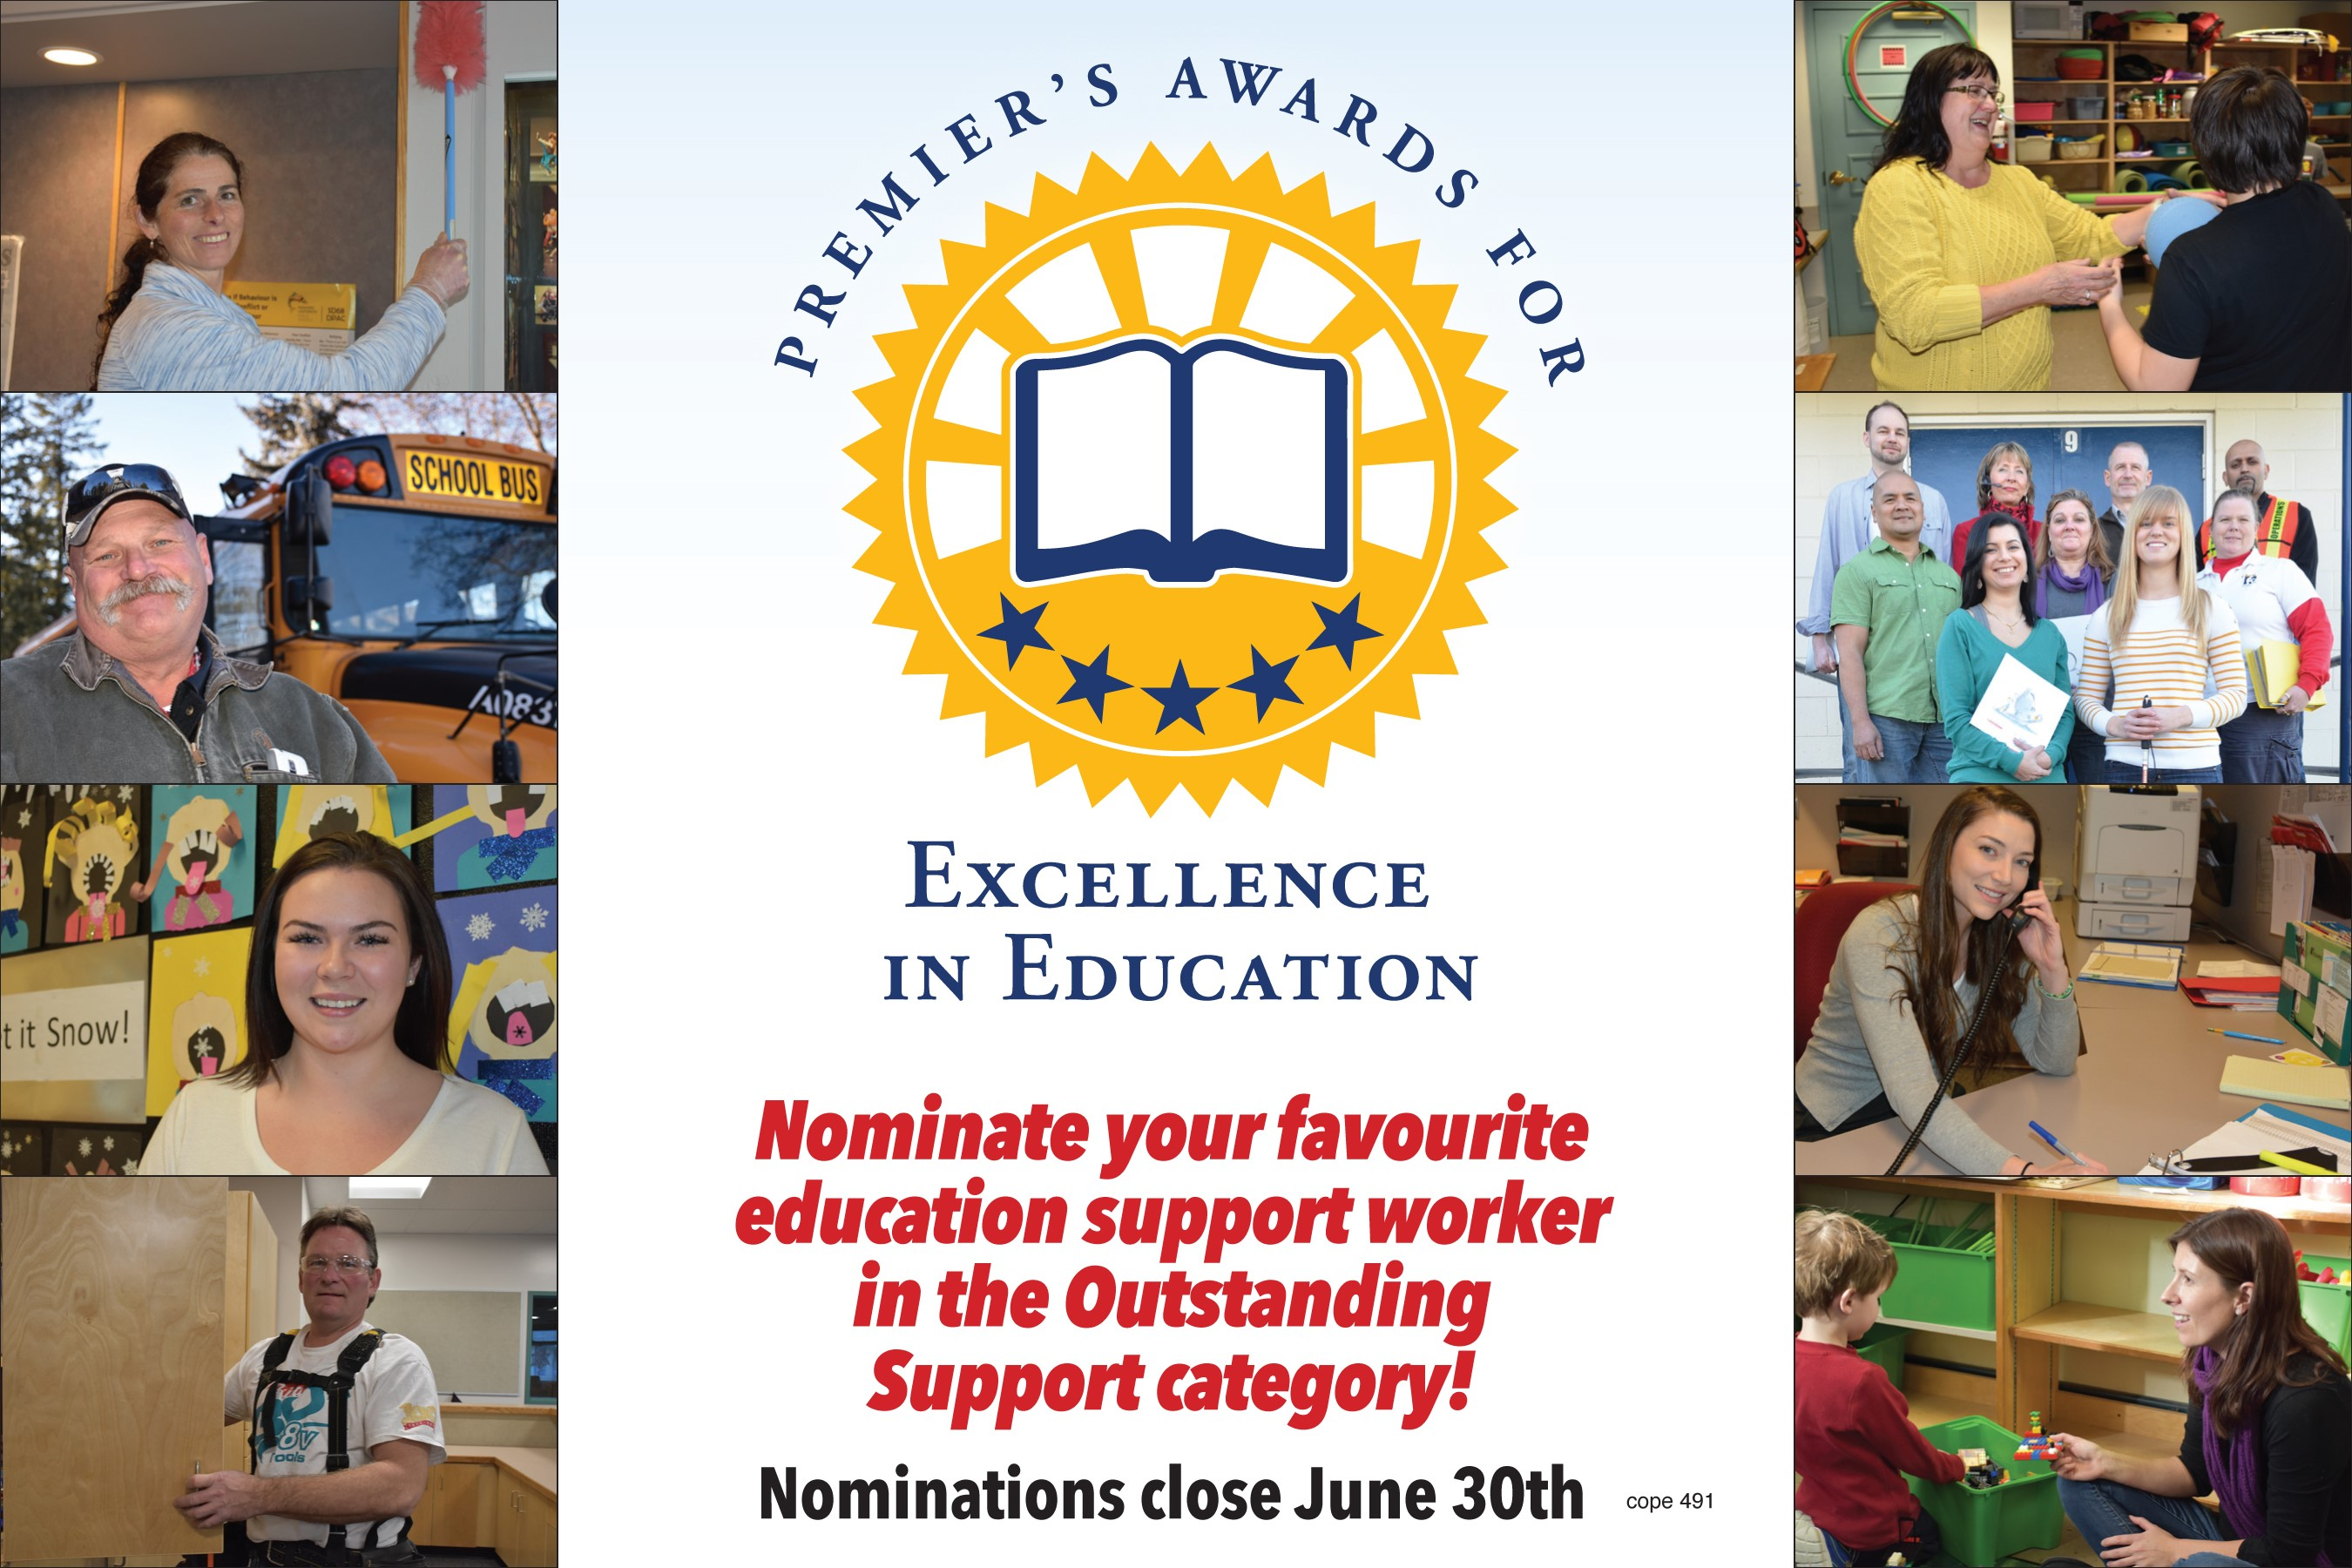 premier_award_for_excellence_in_education_graphic.jpg